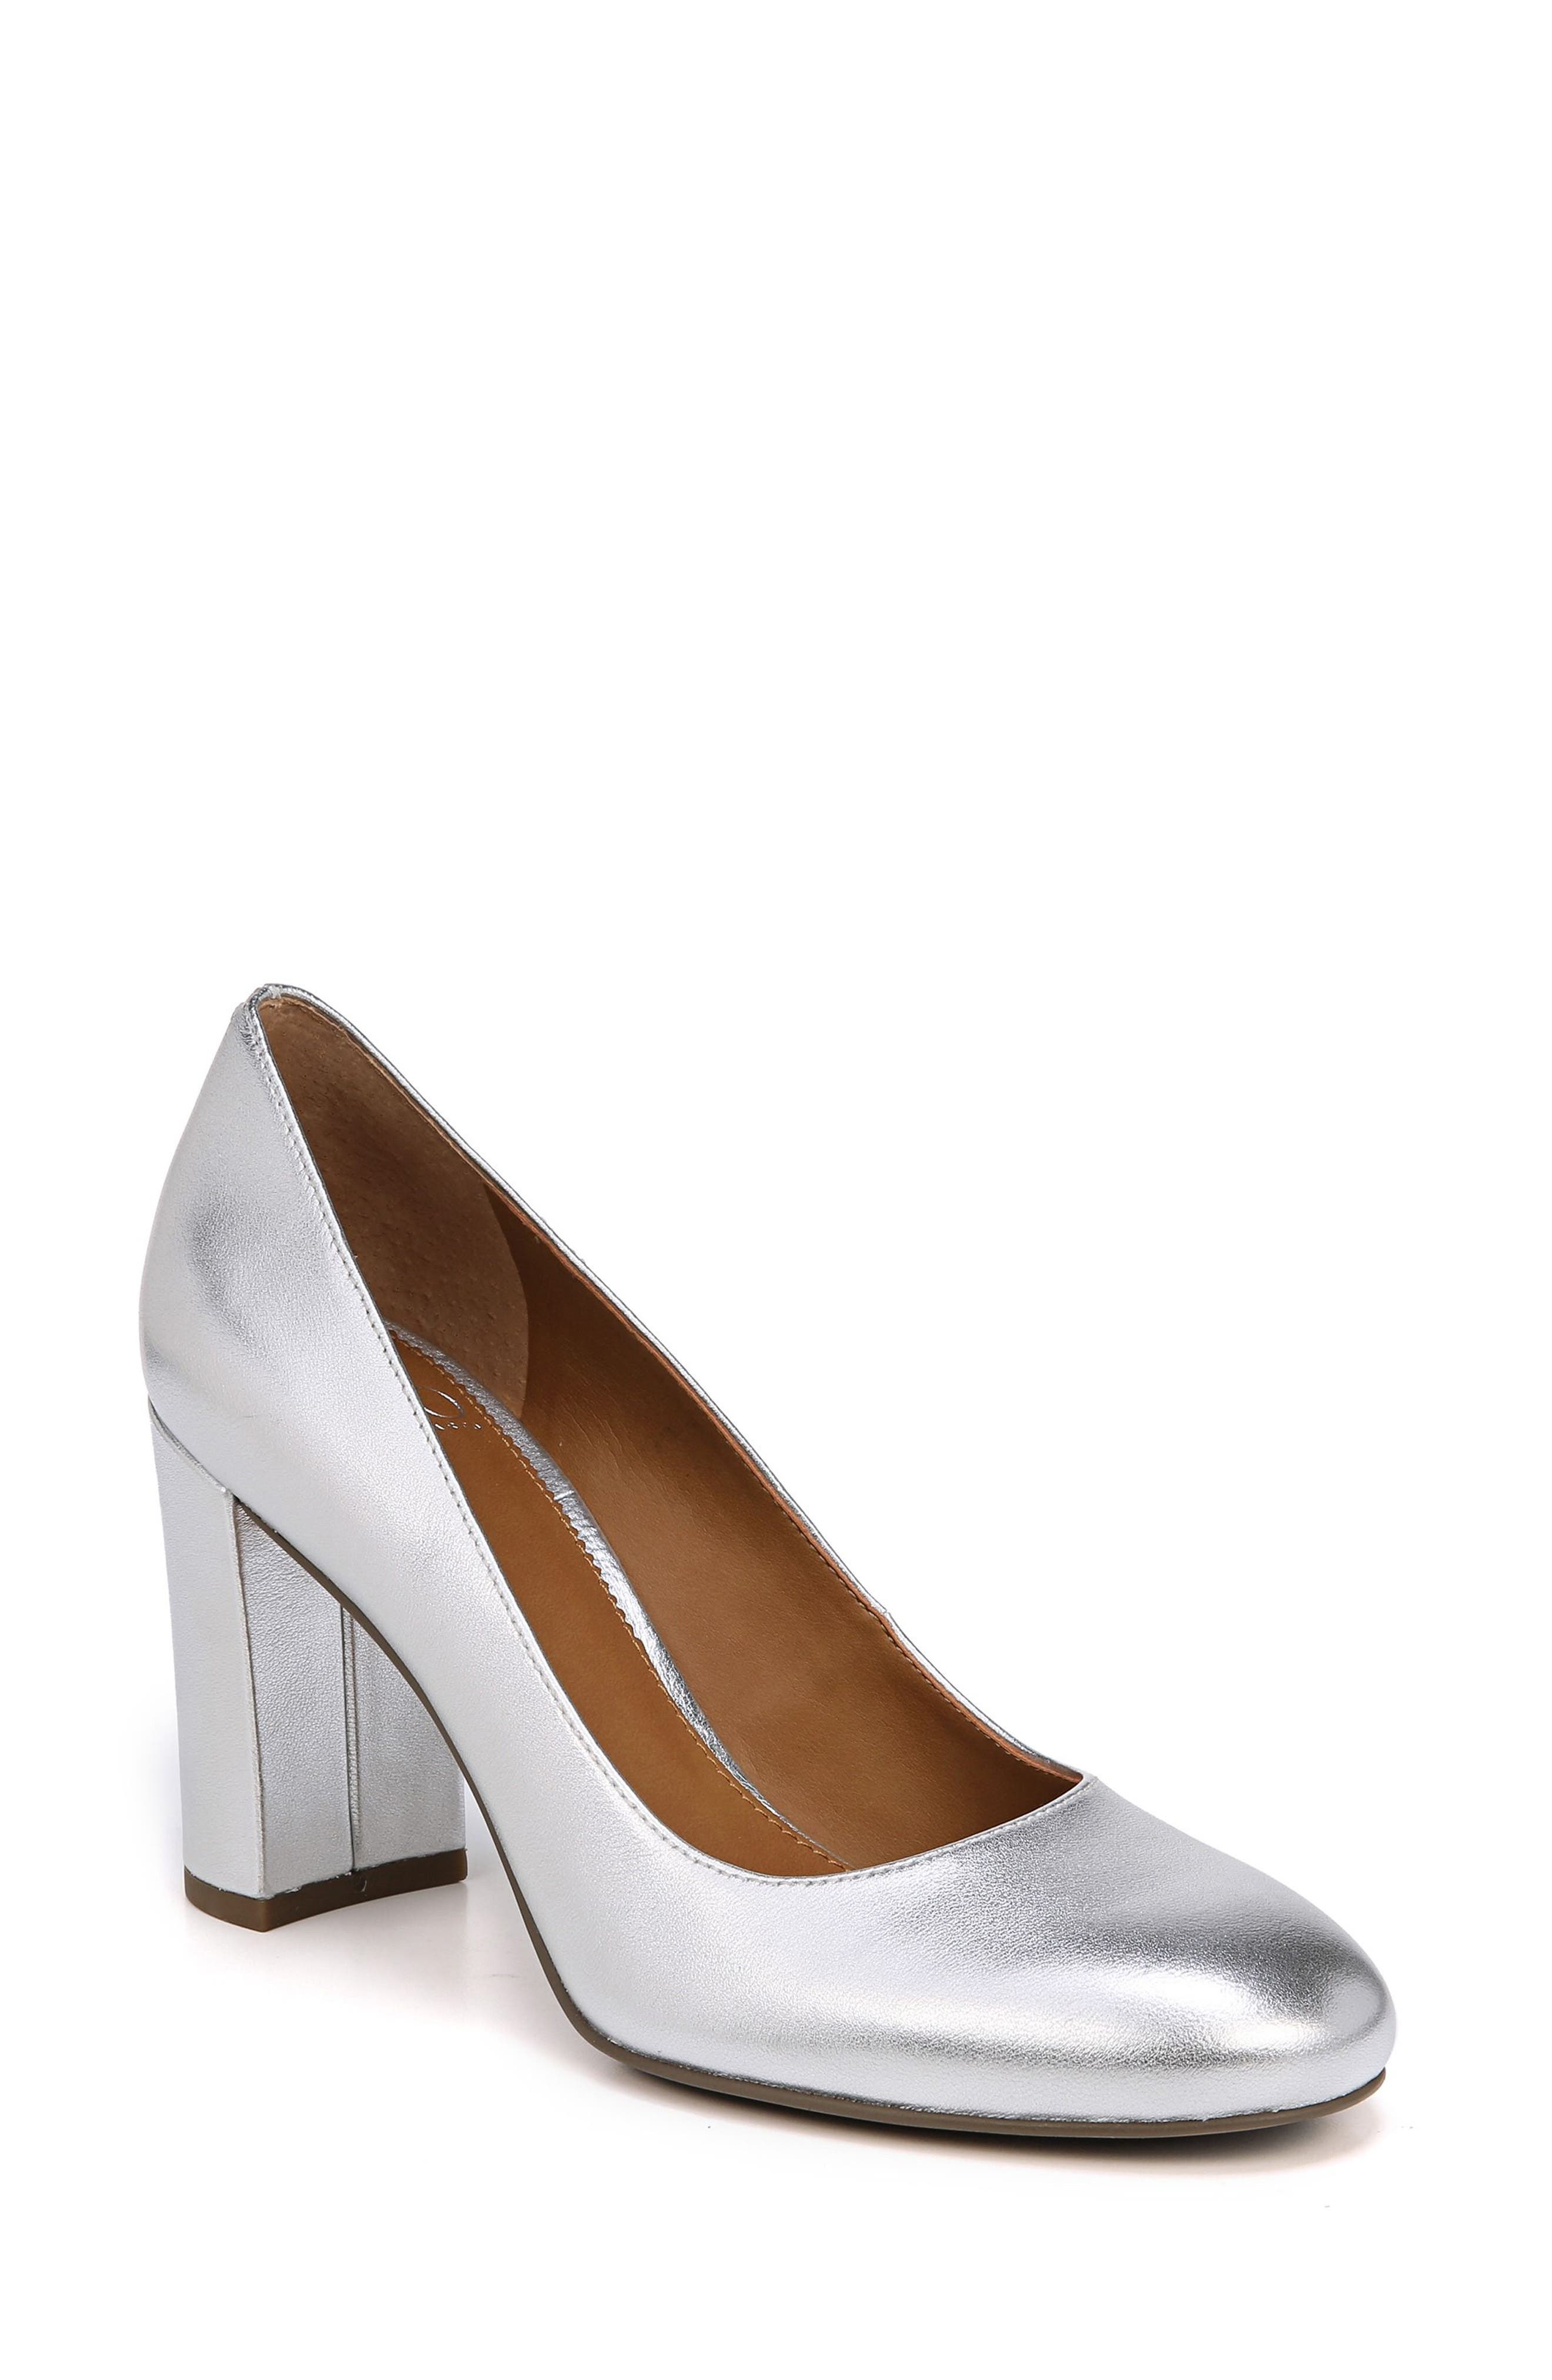 Aziza Block Heel Pump,                         Main,                         color, Silver Leather